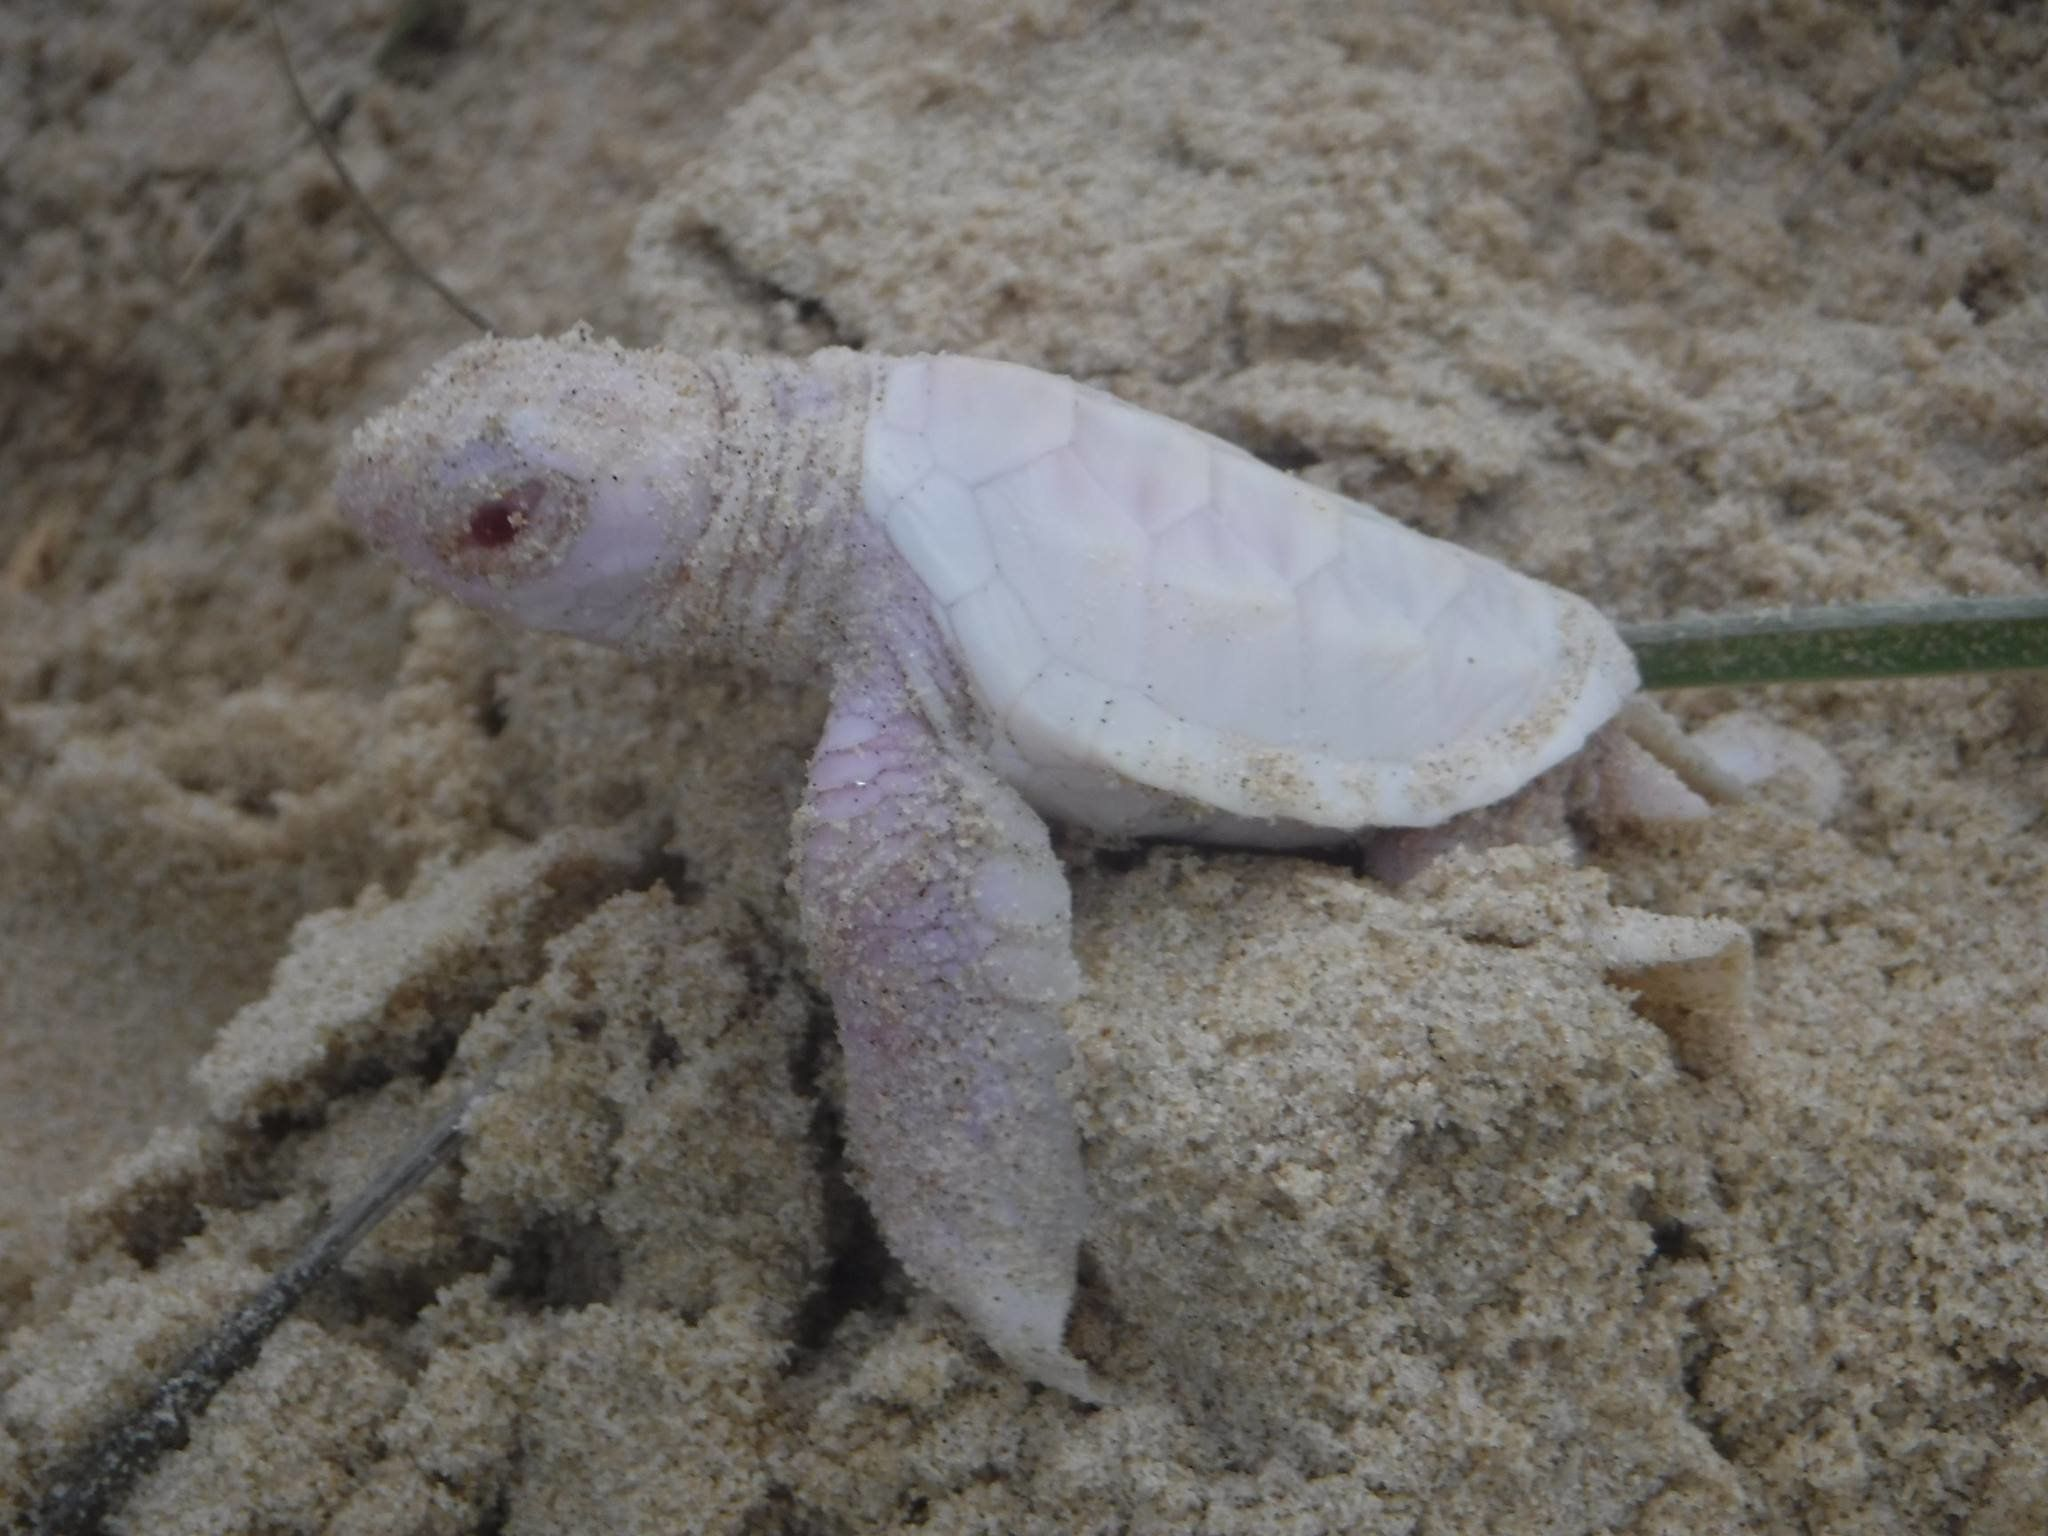 A baby albino sea turtle is seen making its debut along an Australian beach on Sunday.